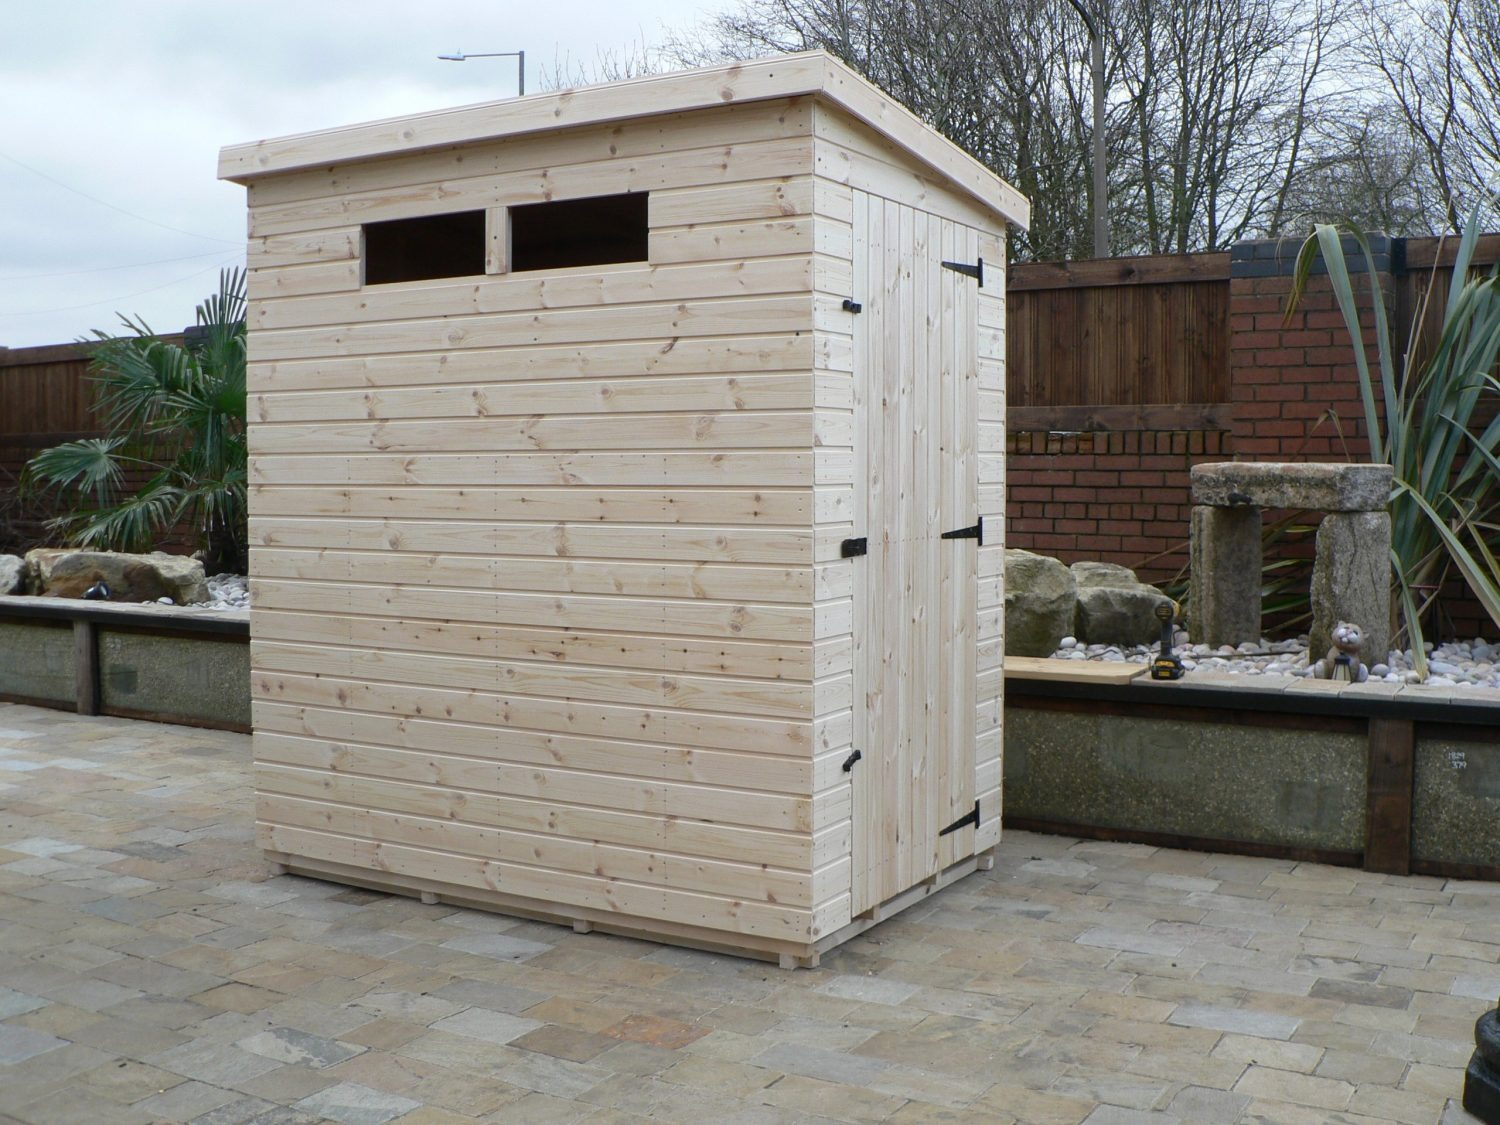 6' X 4' Pent Shed Security Windows